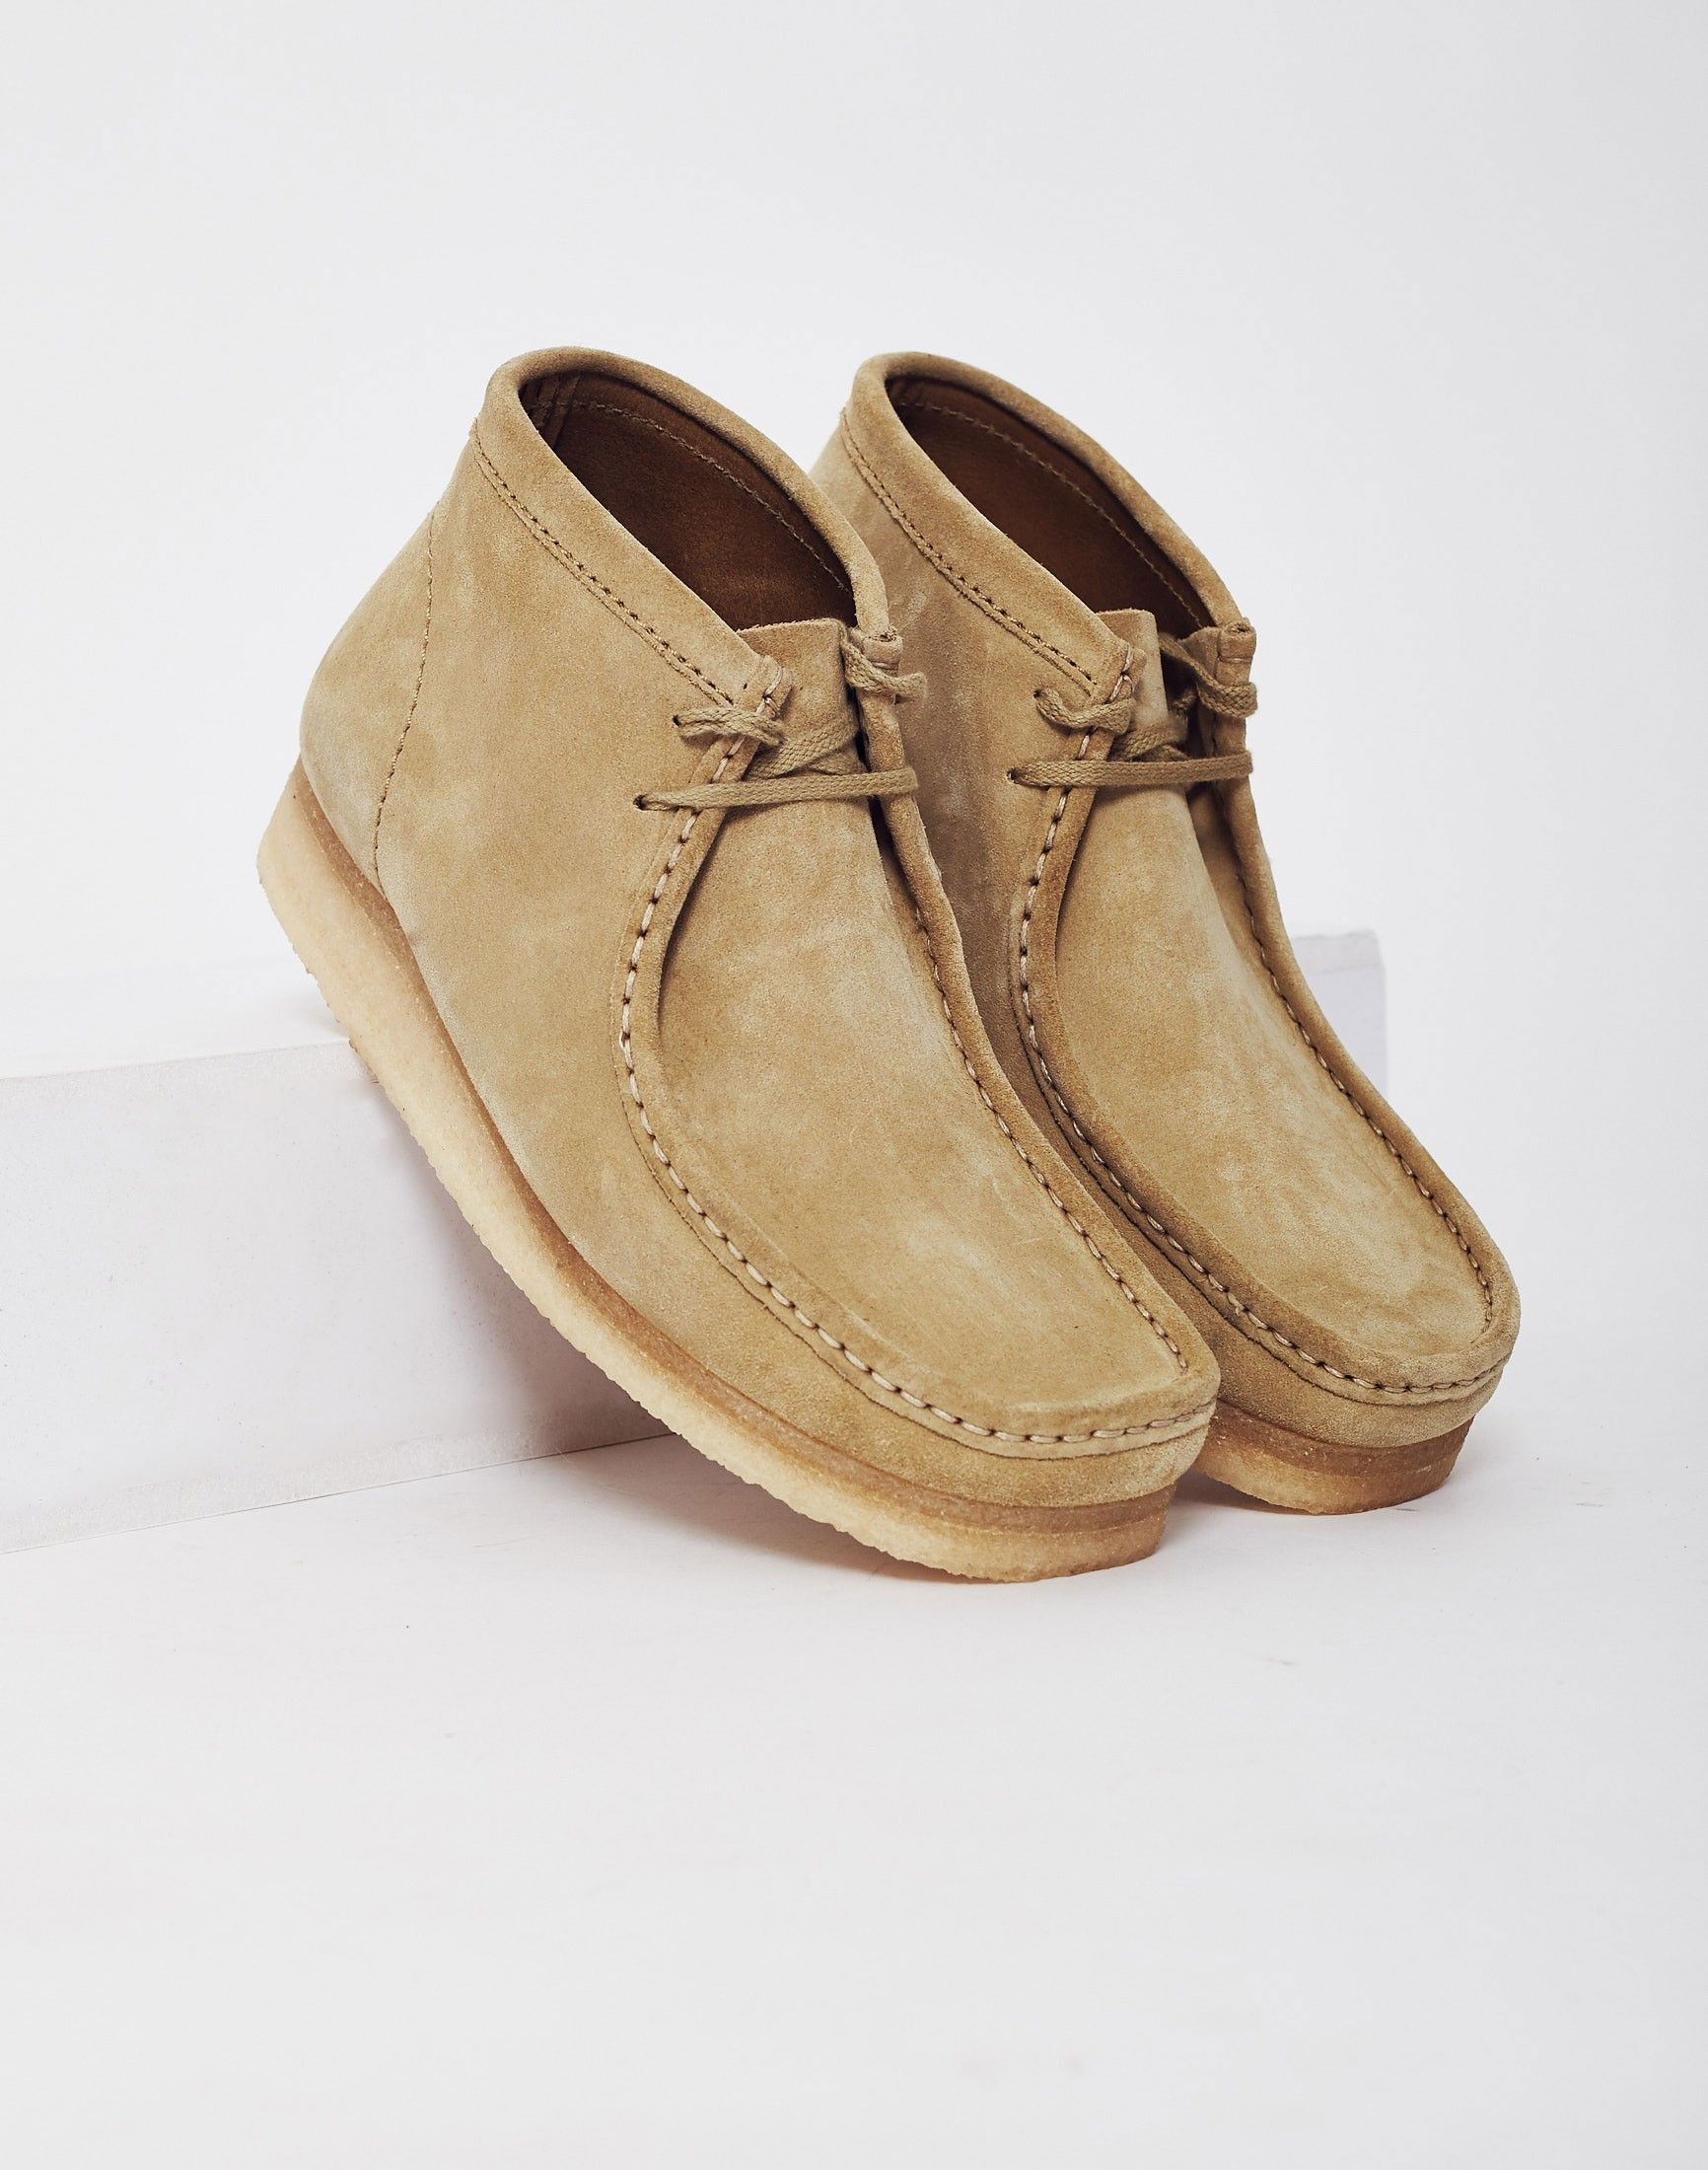 b8ced755d0169a Clarks Originals Suede Wallabee Boot Cream | Individual Style in ...